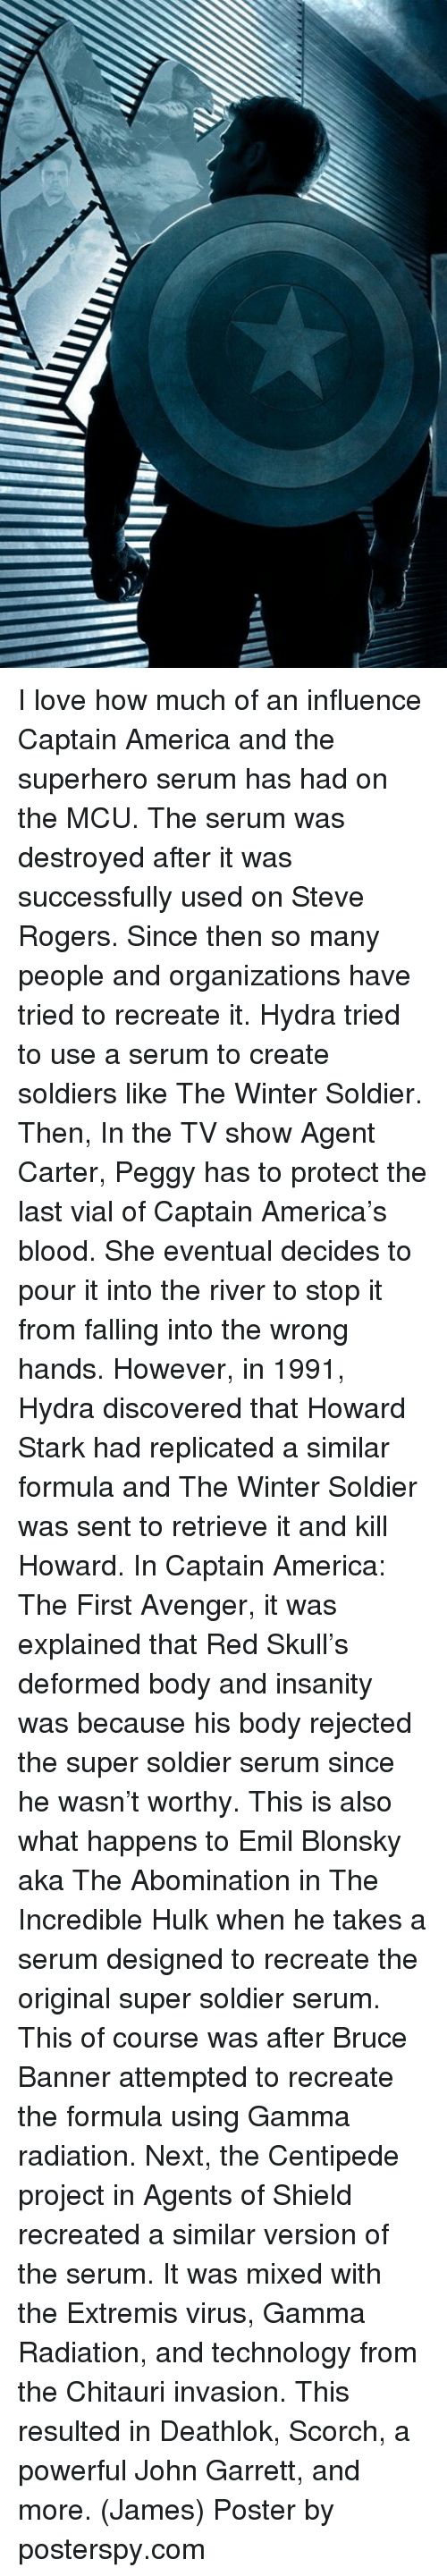 hulking: I love how much of an influence Captain America and the superhero serum has had on the MCU. The serum was destroyed after it was successfully used on Steve Rogers. Since then so many people and organizations have tried to recreate it.  Hydra tried to use a serum to create soldiers like The Winter Soldier. Then, In the TV show Agent Carter, Peggy has to protect the last vial of Captain America's blood. She eventual decides to pour it into the river to stop it from falling into the wrong hands. However, in 1991, Hydra discovered that Howard Stark had replicated a similar formula and The Winter Soldier was sent to retrieve it and kill Howard.   In Captain America: The First Avenger, it was explained that Red Skull's deformed body and insanity was because his body rejected the super soldier serum since he wasn't worthy. This is also what happens to Emil Blonsky aka The Abomination in The Incredible Hulk when he takes a serum designed to recreate the original super soldier serum. This of course was after Bruce Banner attempted to recreate the formula using Gamma radiation.   Next, the Centipede project in Agents of Shield recreated a similar version of the serum. It was mixed with the Extremis virus, Gamma Radiation, and technology from the Chitauri invasion. This resulted in Deathlok, Scorch, a powerful John Garrett, and more.  (James)  Poster by posterspy.com